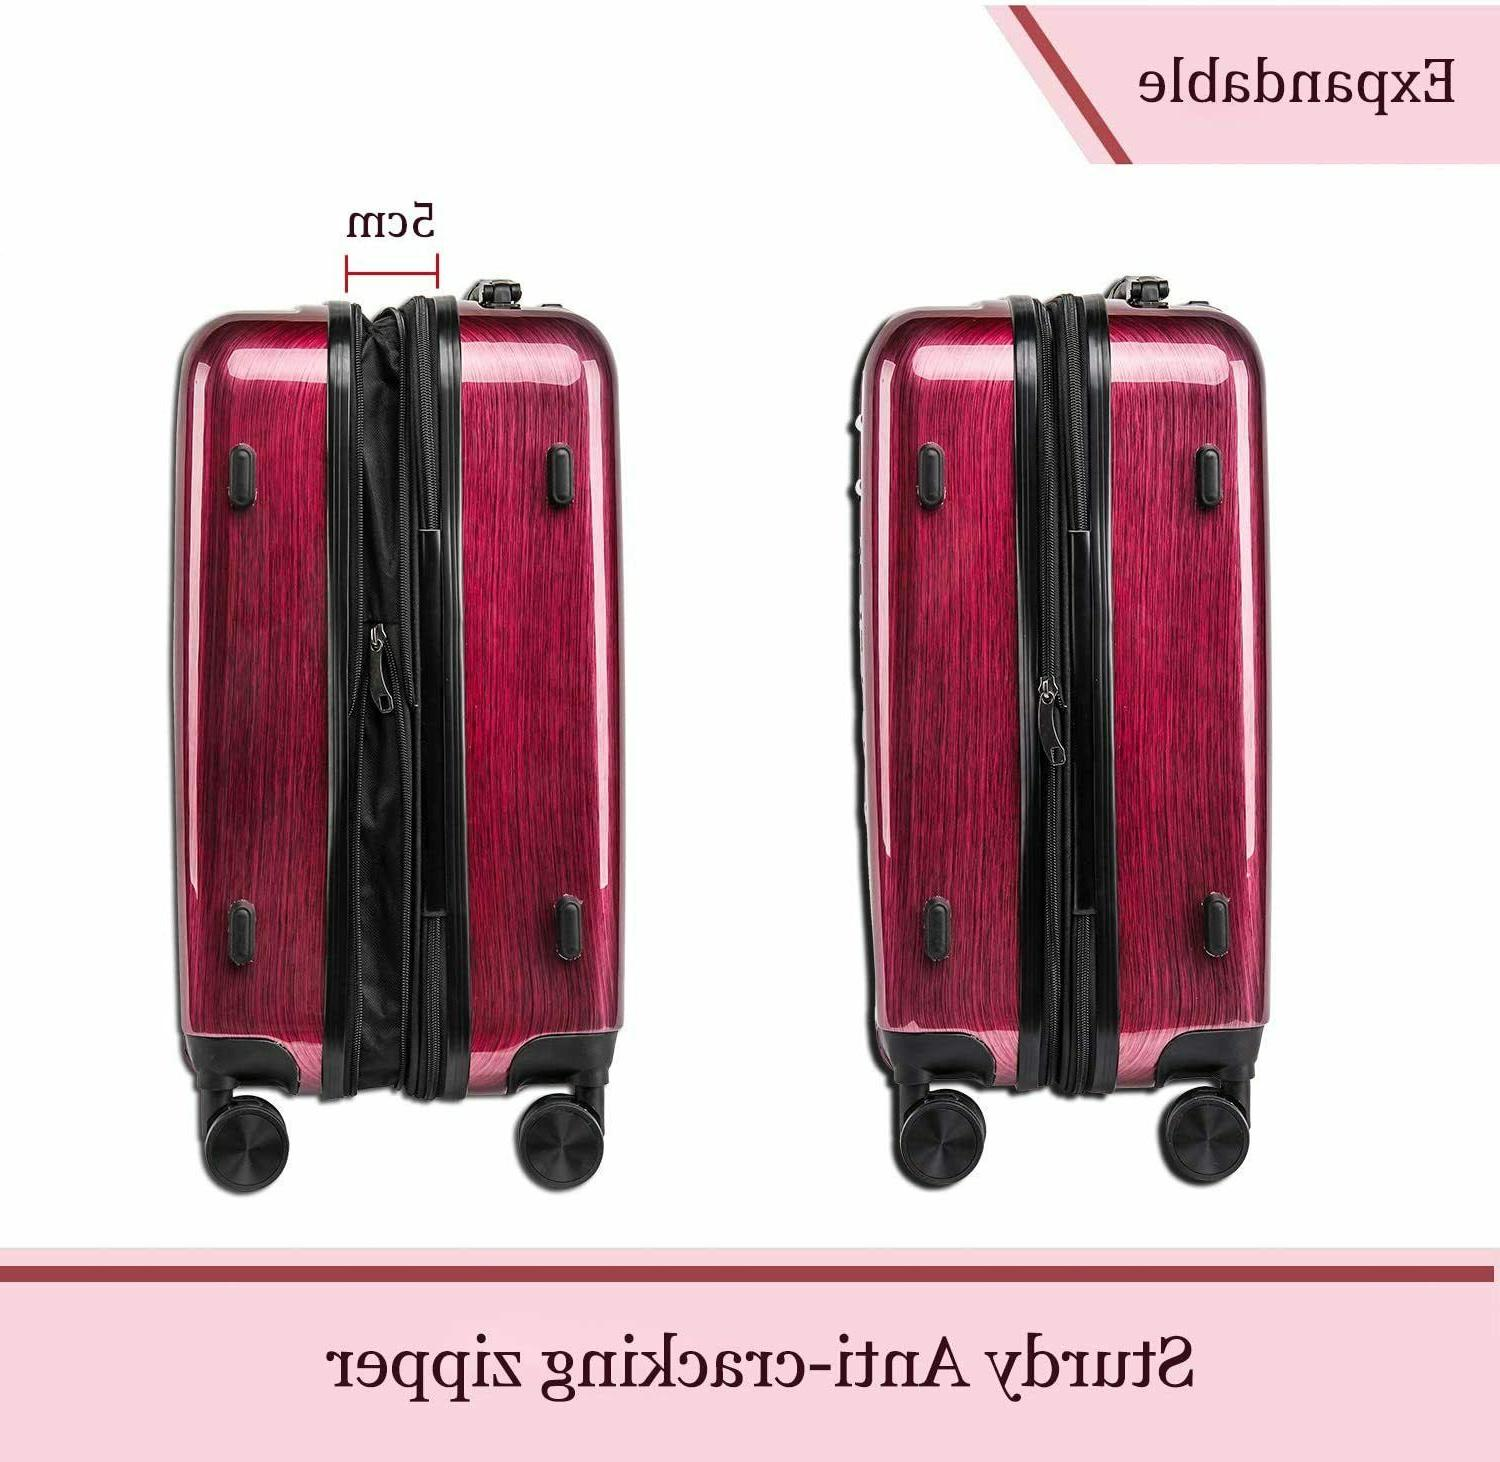 CarryOne Luggage Inch Carry Travel Suitcase Sile